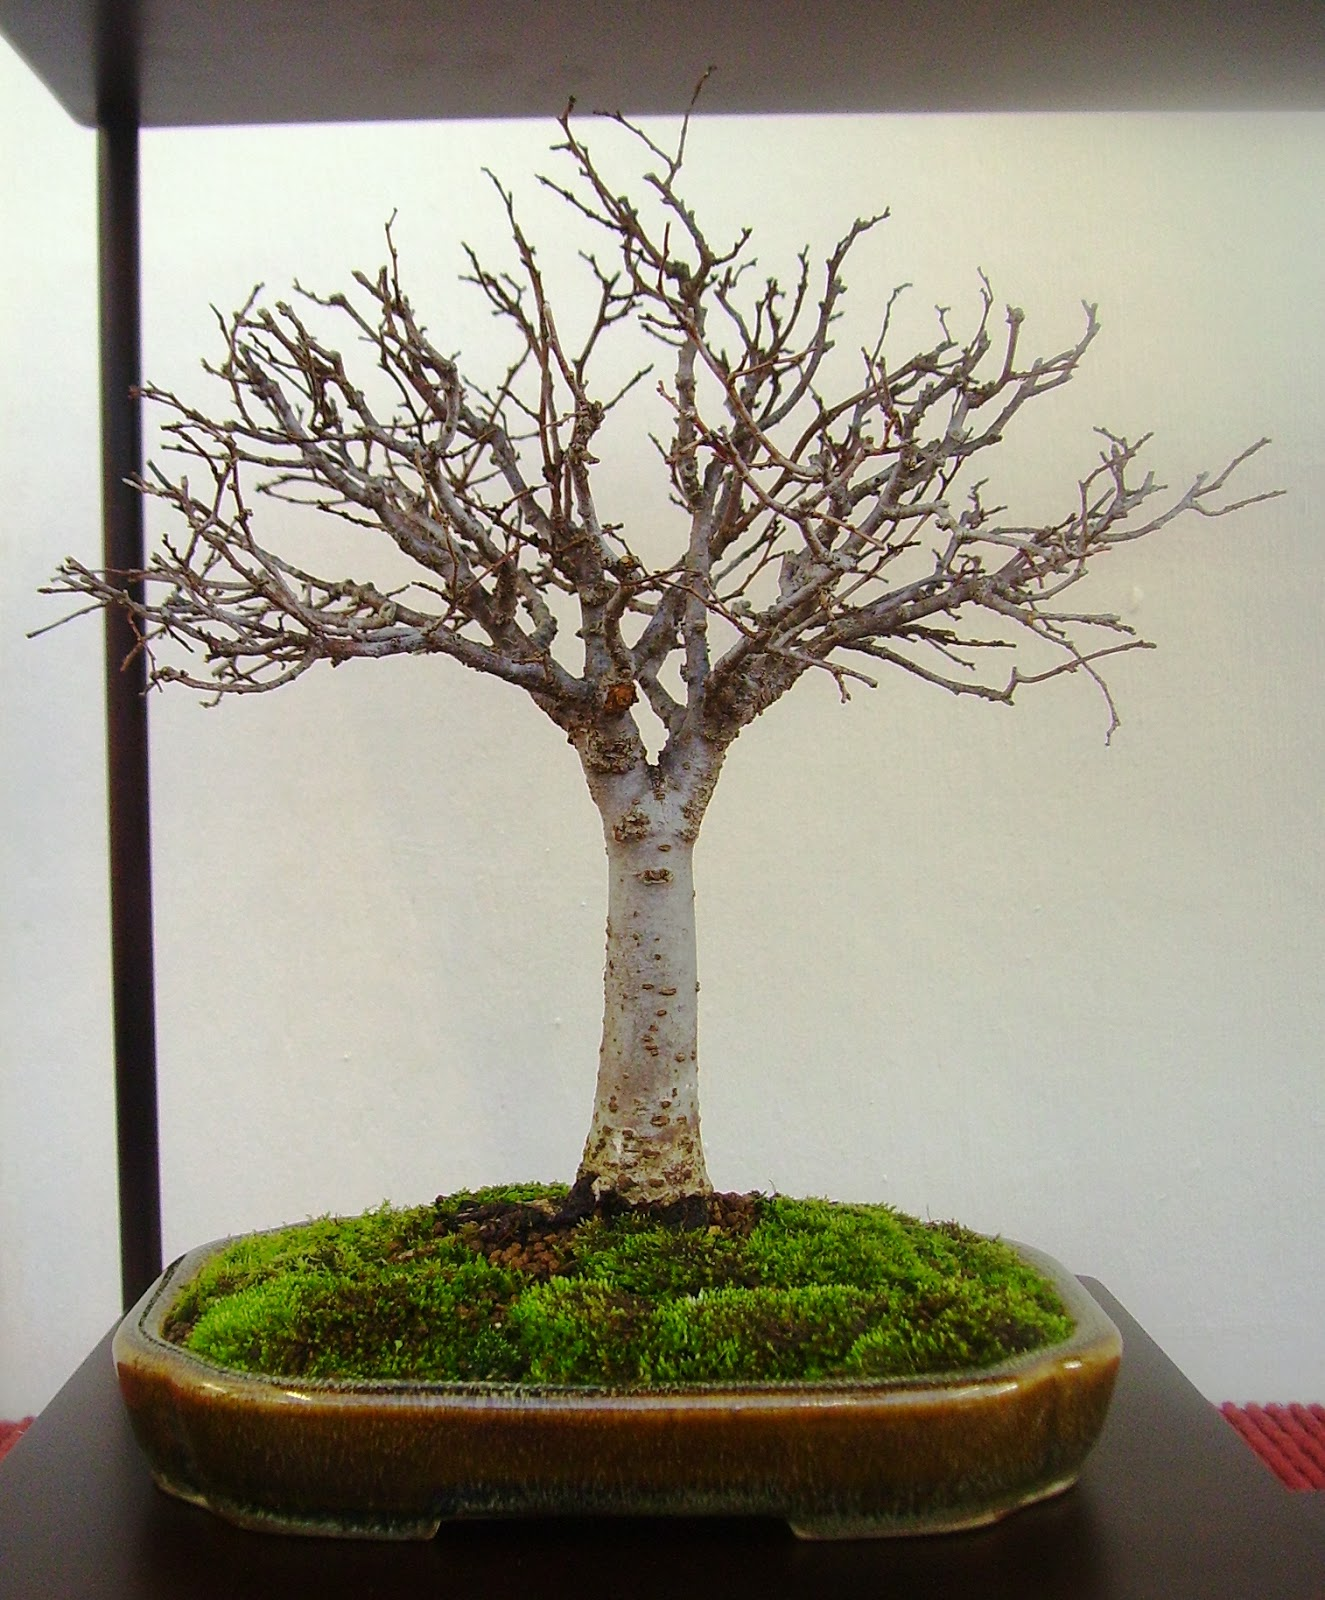 Bespoke Bonsai Stands My Trees Displayed At The BSA Show